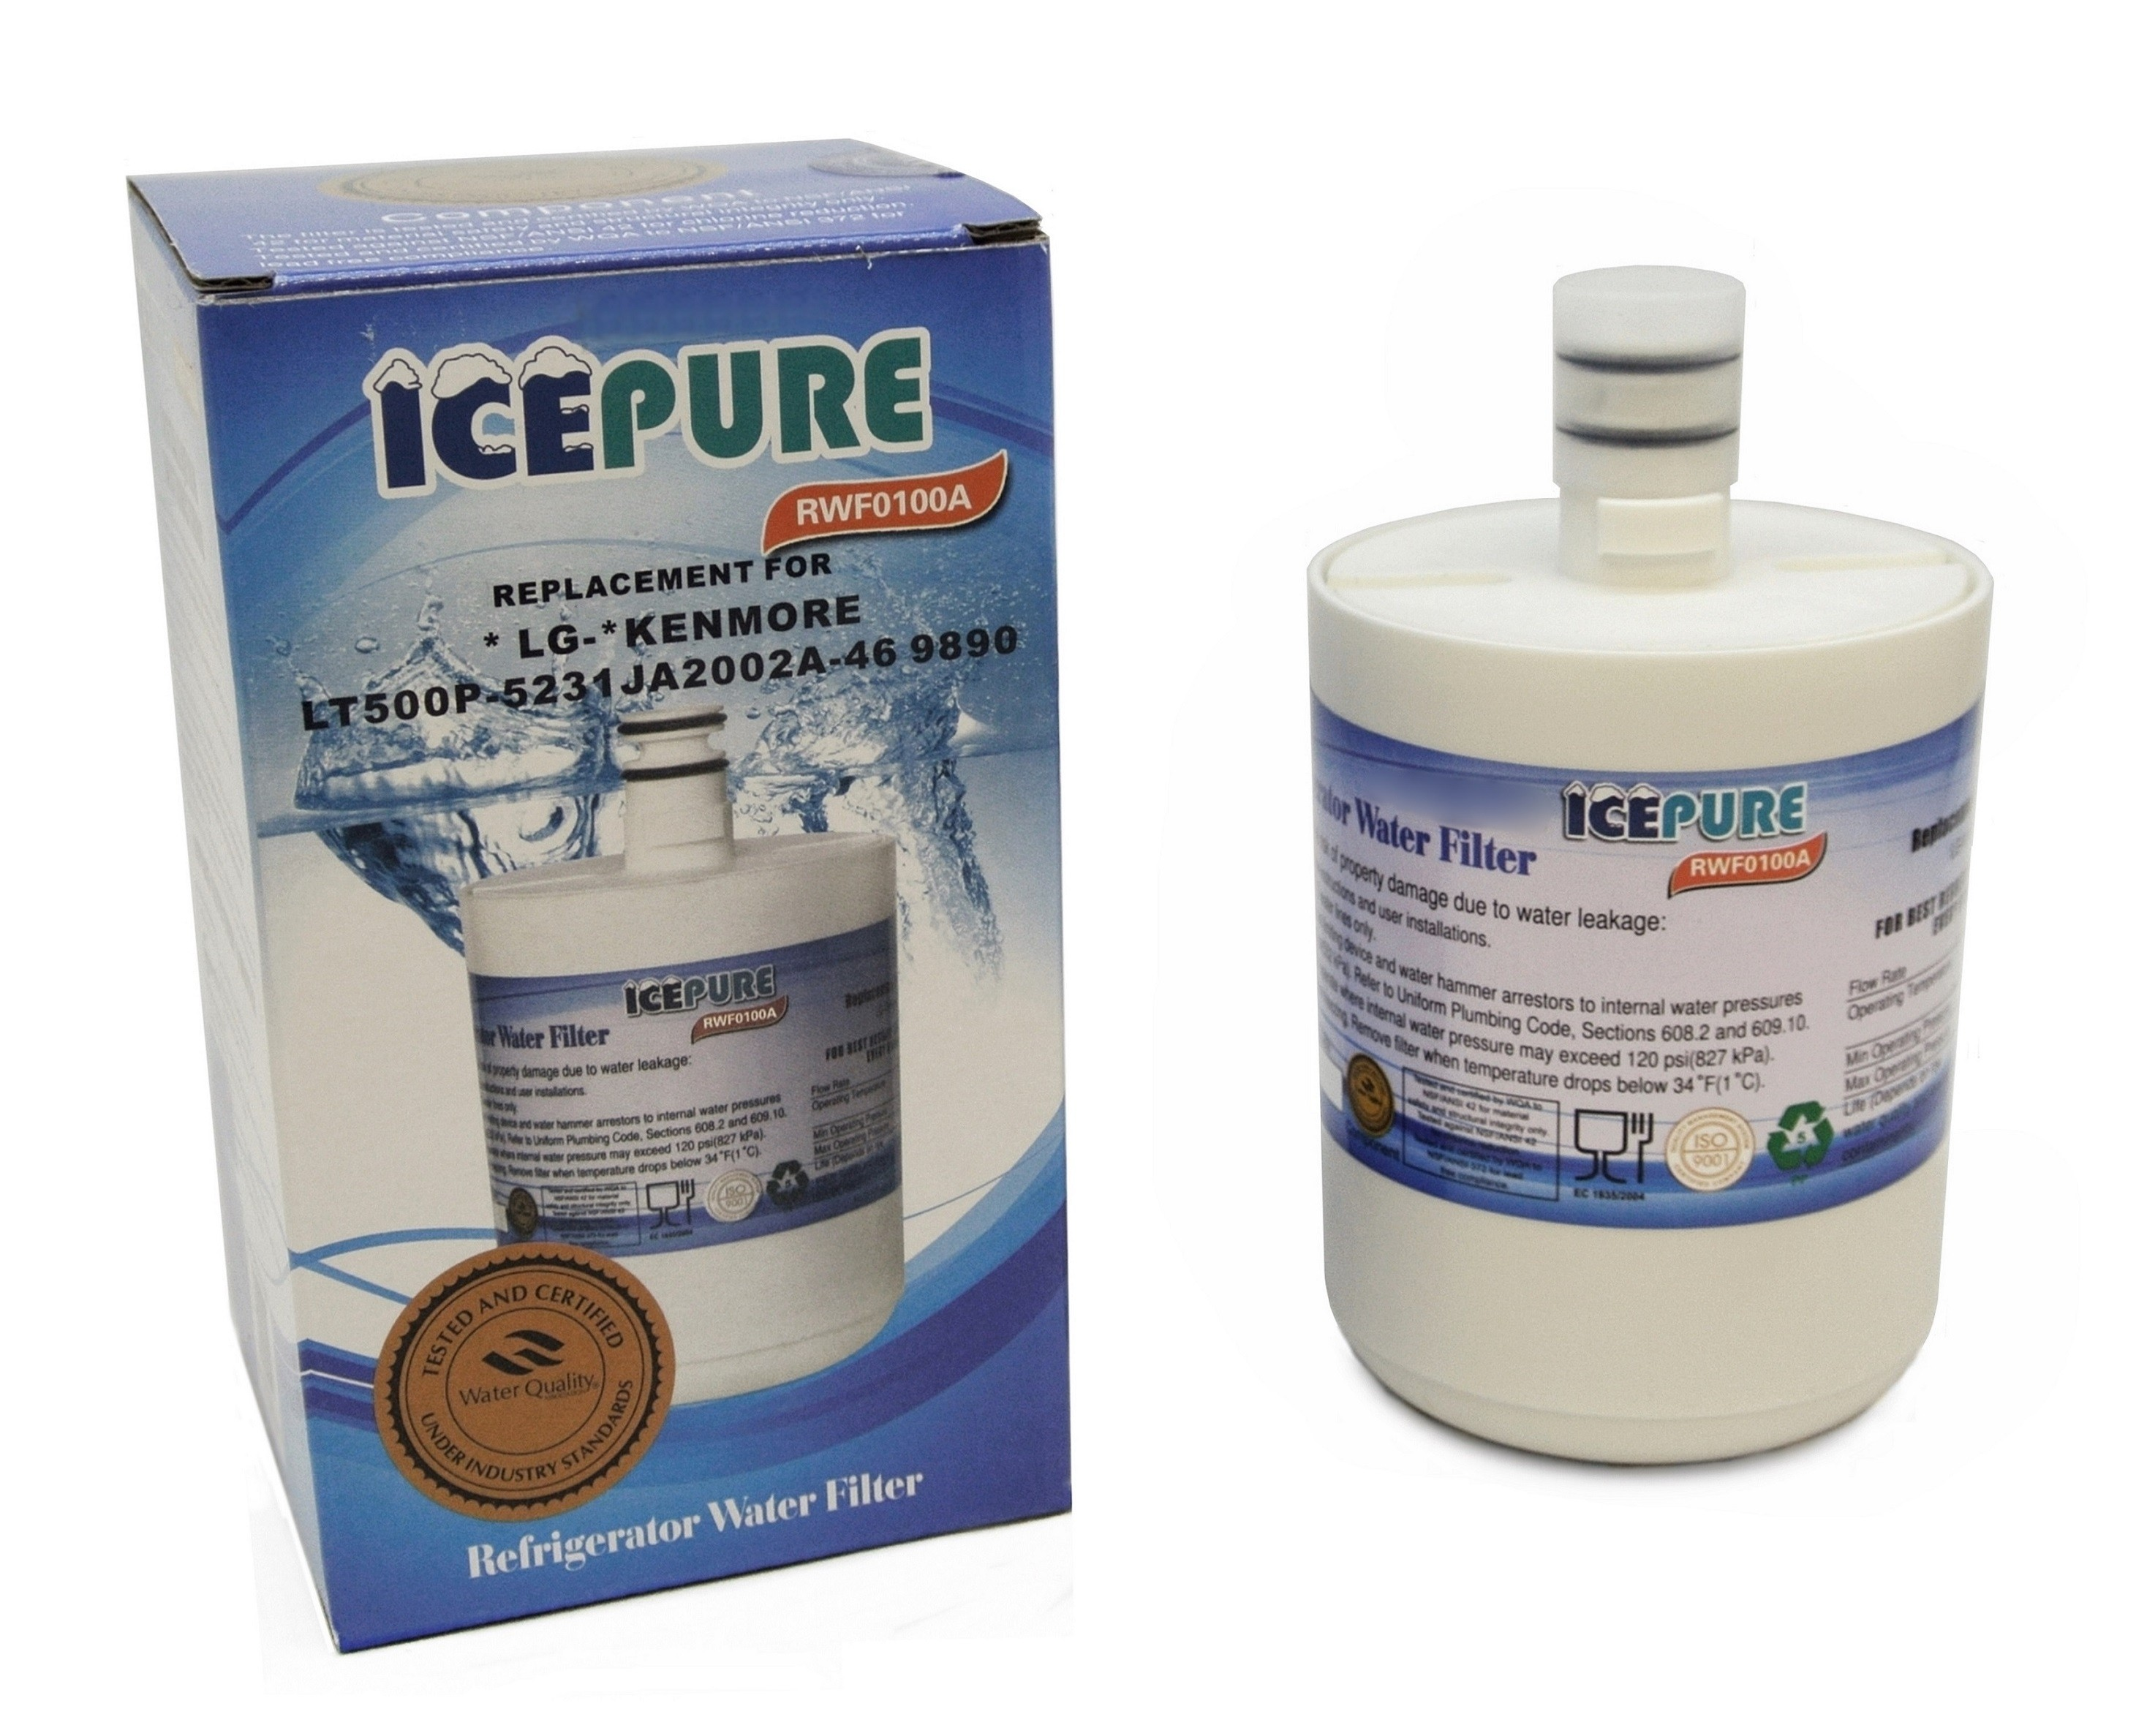 IcePure RWF0100A Compatible LG LT500P Fridge Water Filter